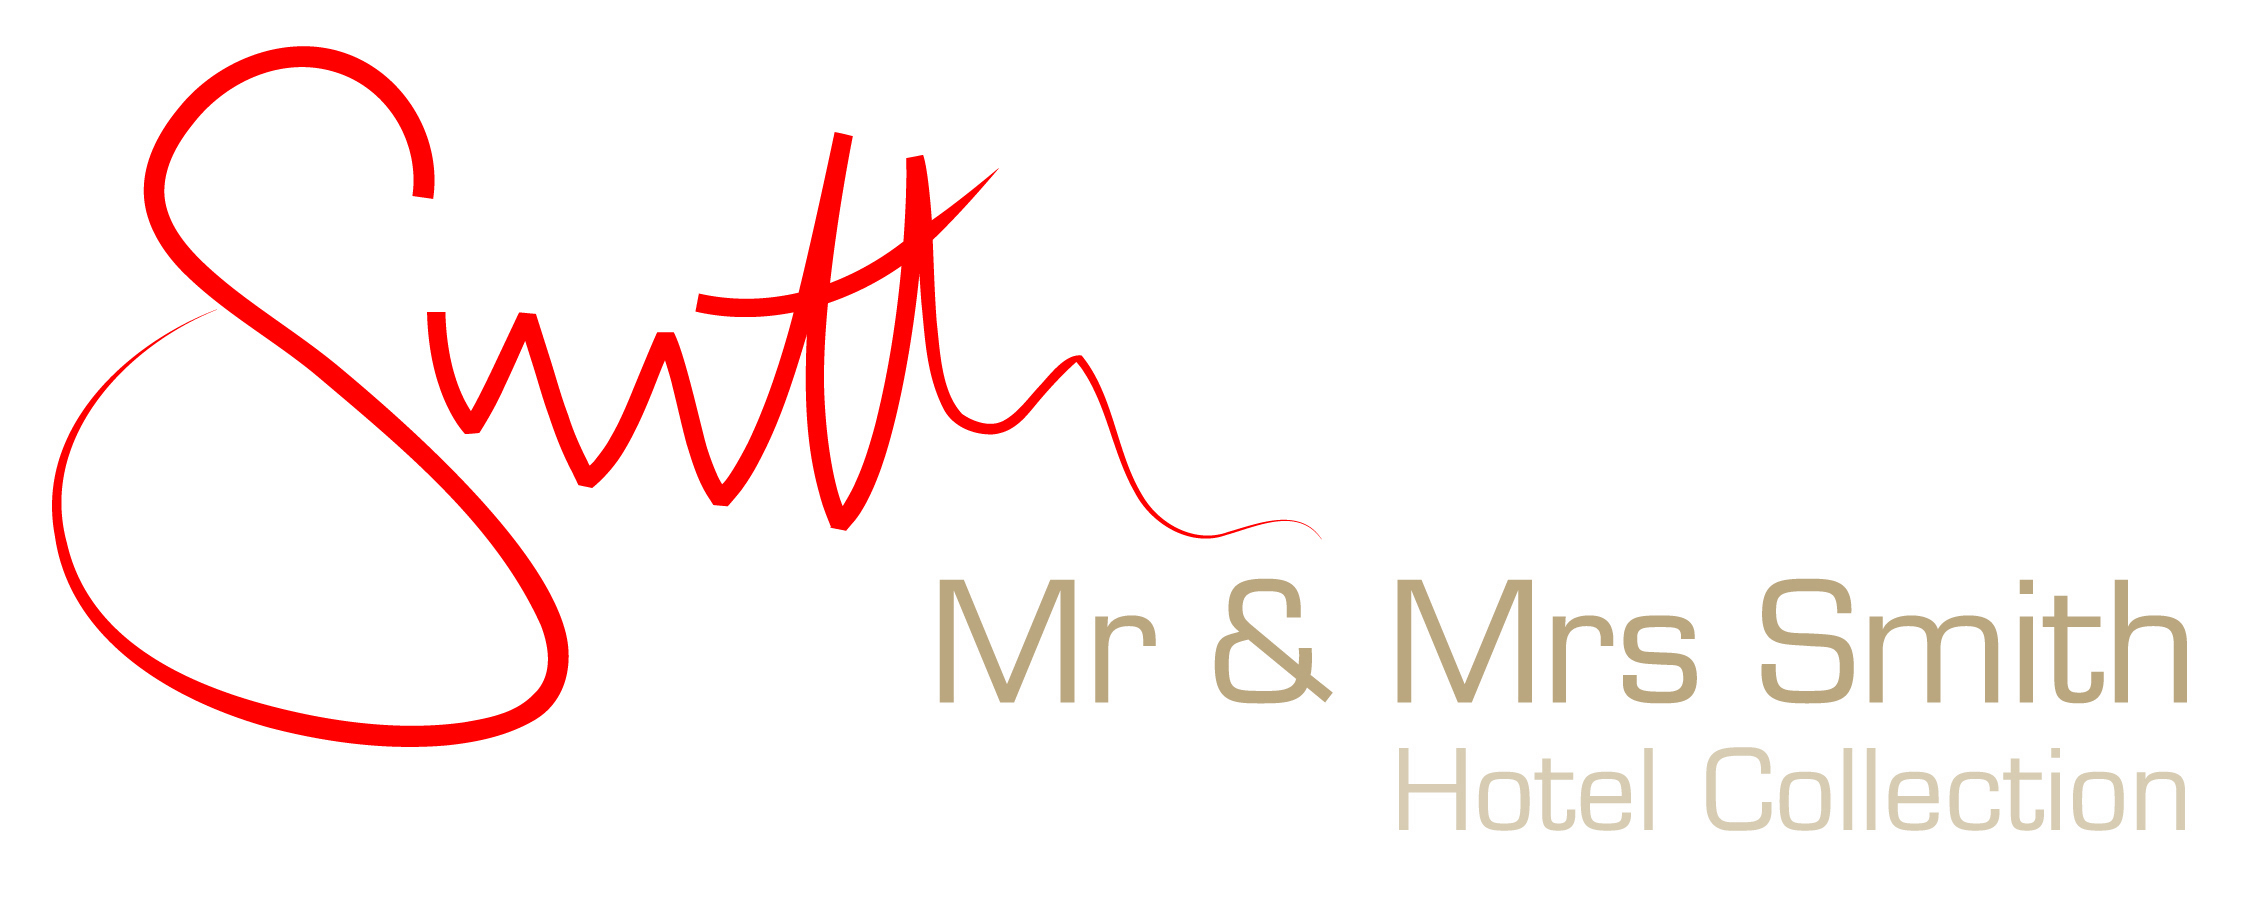 Mr and mrs smith boutique hotel collection brand bon ton for Boutique hotel collection